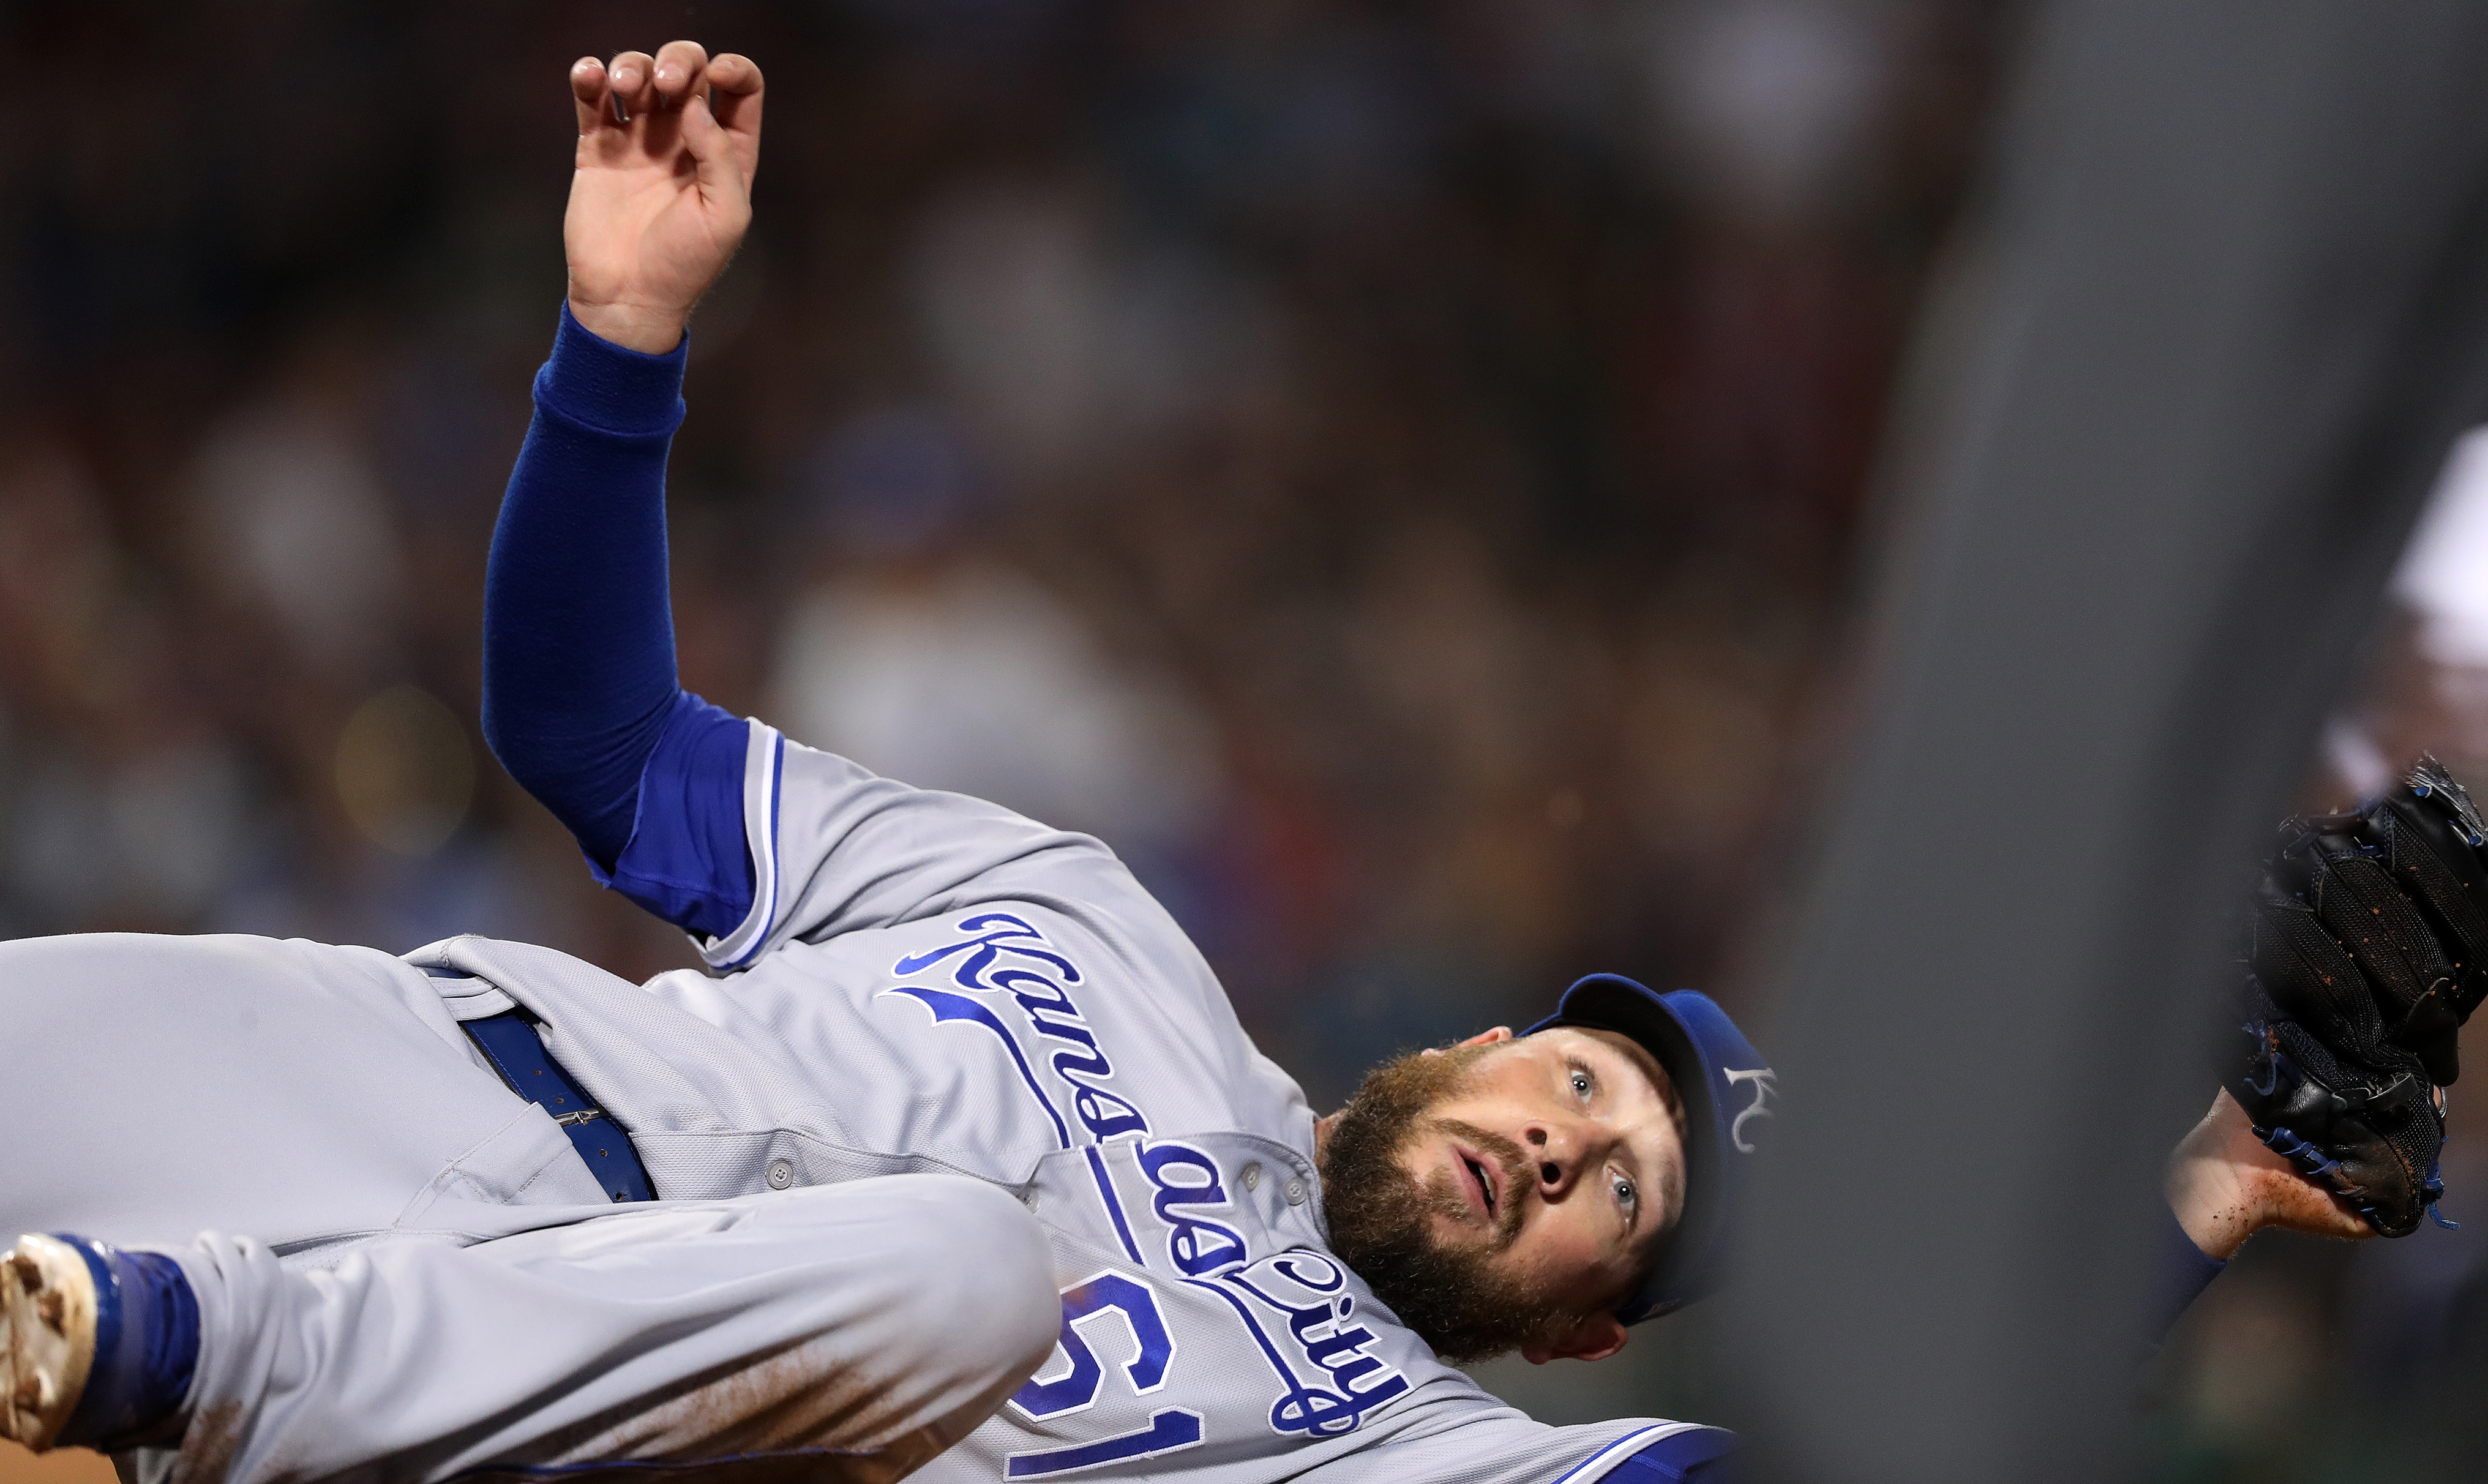 Kansas City Royals pitcher Kevin McCarthy looks for the umpire's call as he covered first base and fell, but got the out on Red Sox center fielder Jackie Bradley Jr. to end the sixth inning. The Boston Red Sox host the Kansas City Royals in a regular seas